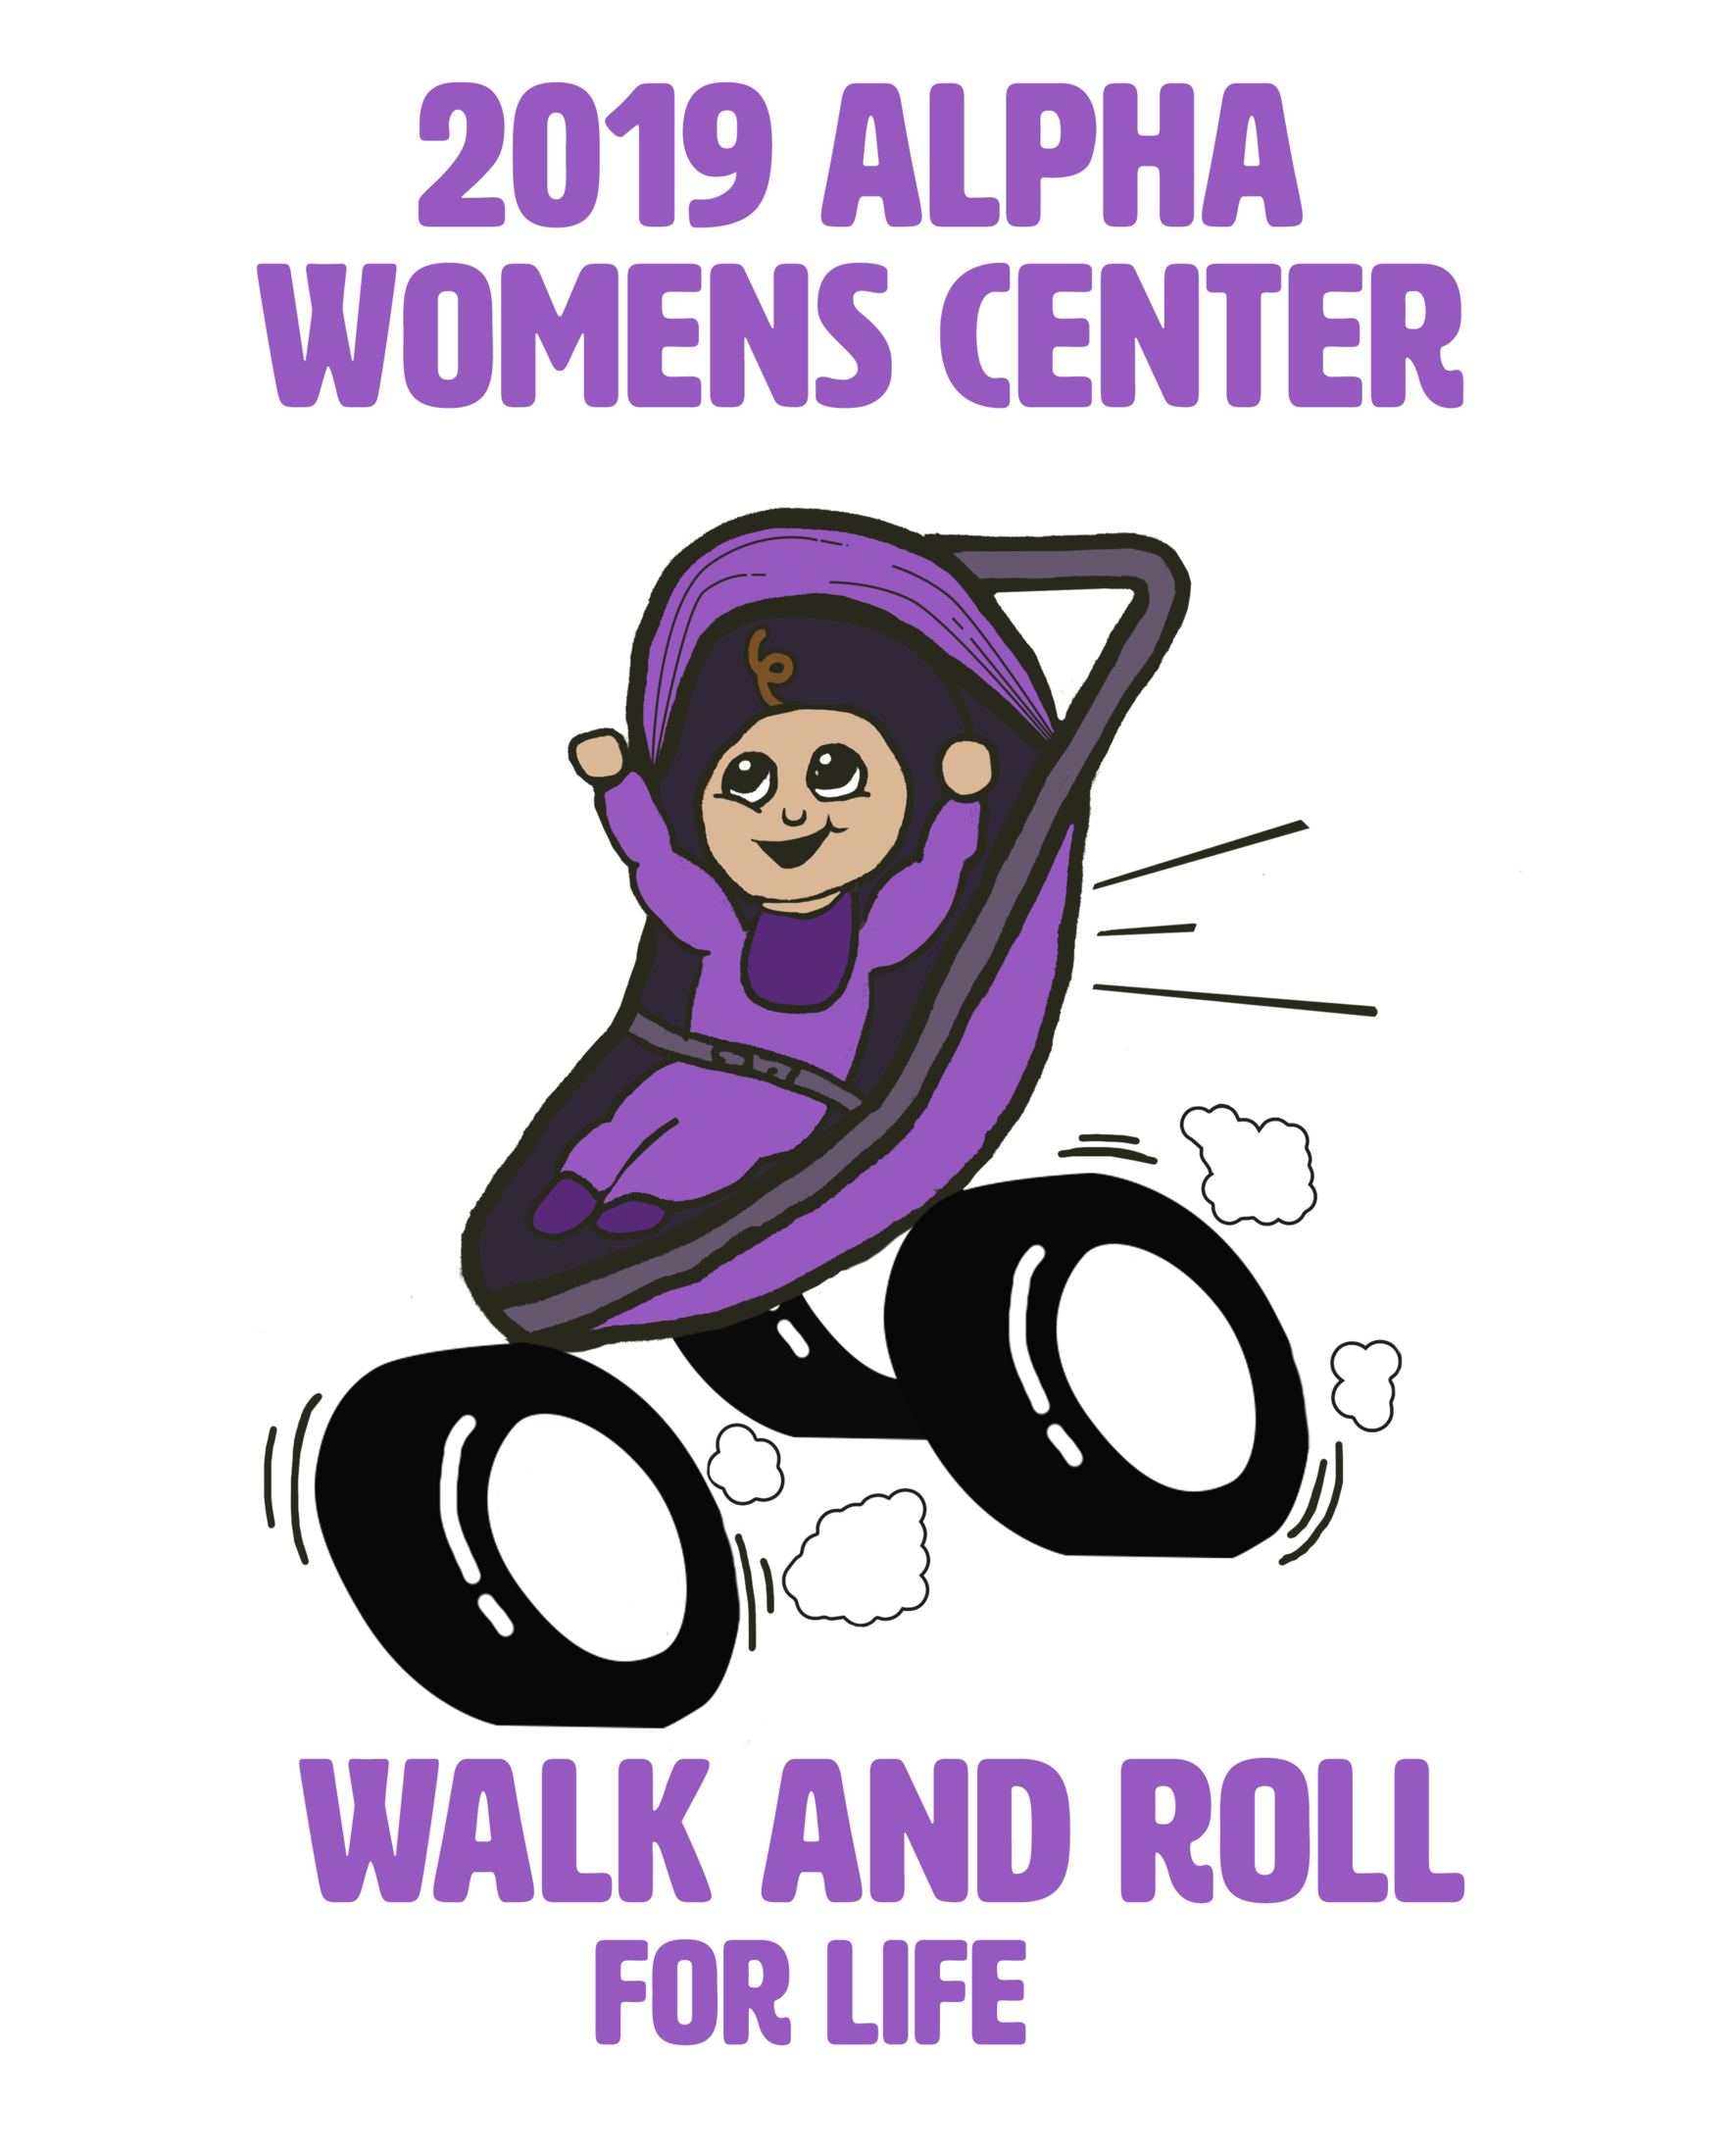 2019 Walk and Roll for Life image